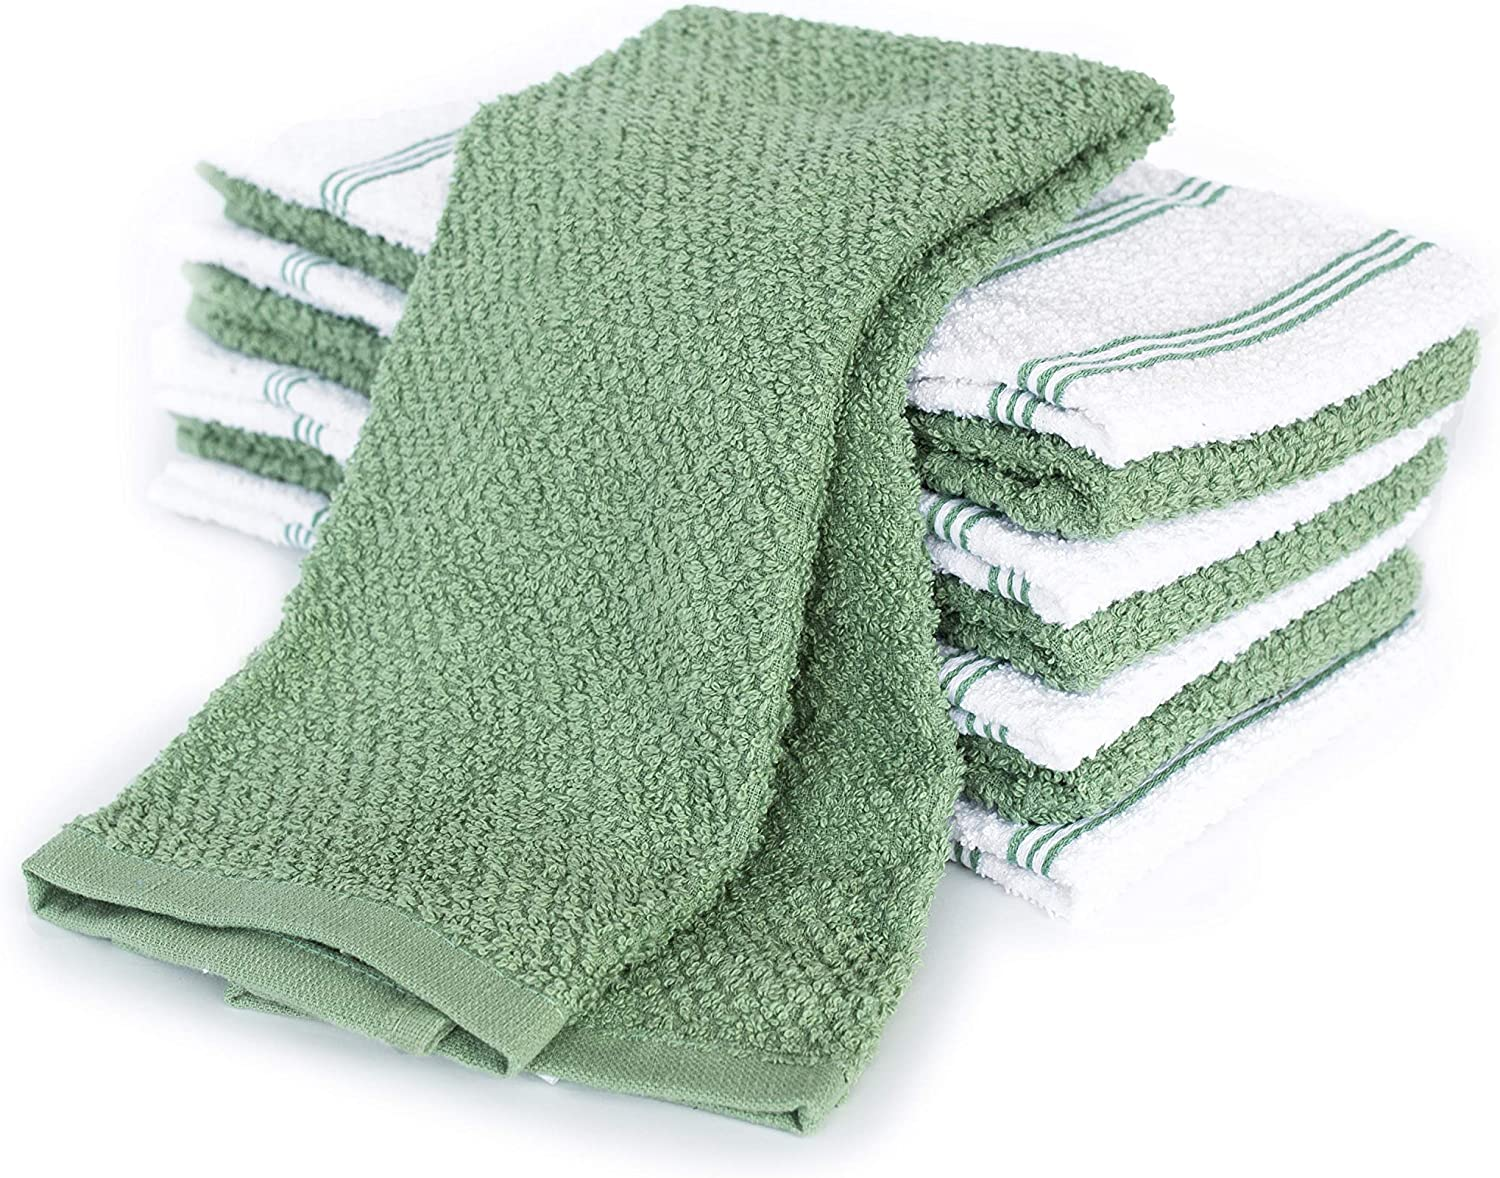 KAF Home Pantry Set of 8 Piedmont Kitchen Towels | Set of 8, 16x26 Inches | Ultra Absorbent Terry Cloth Dish Towels - Dark Gray (Mineral Green, Kitchen Towel 16x26)